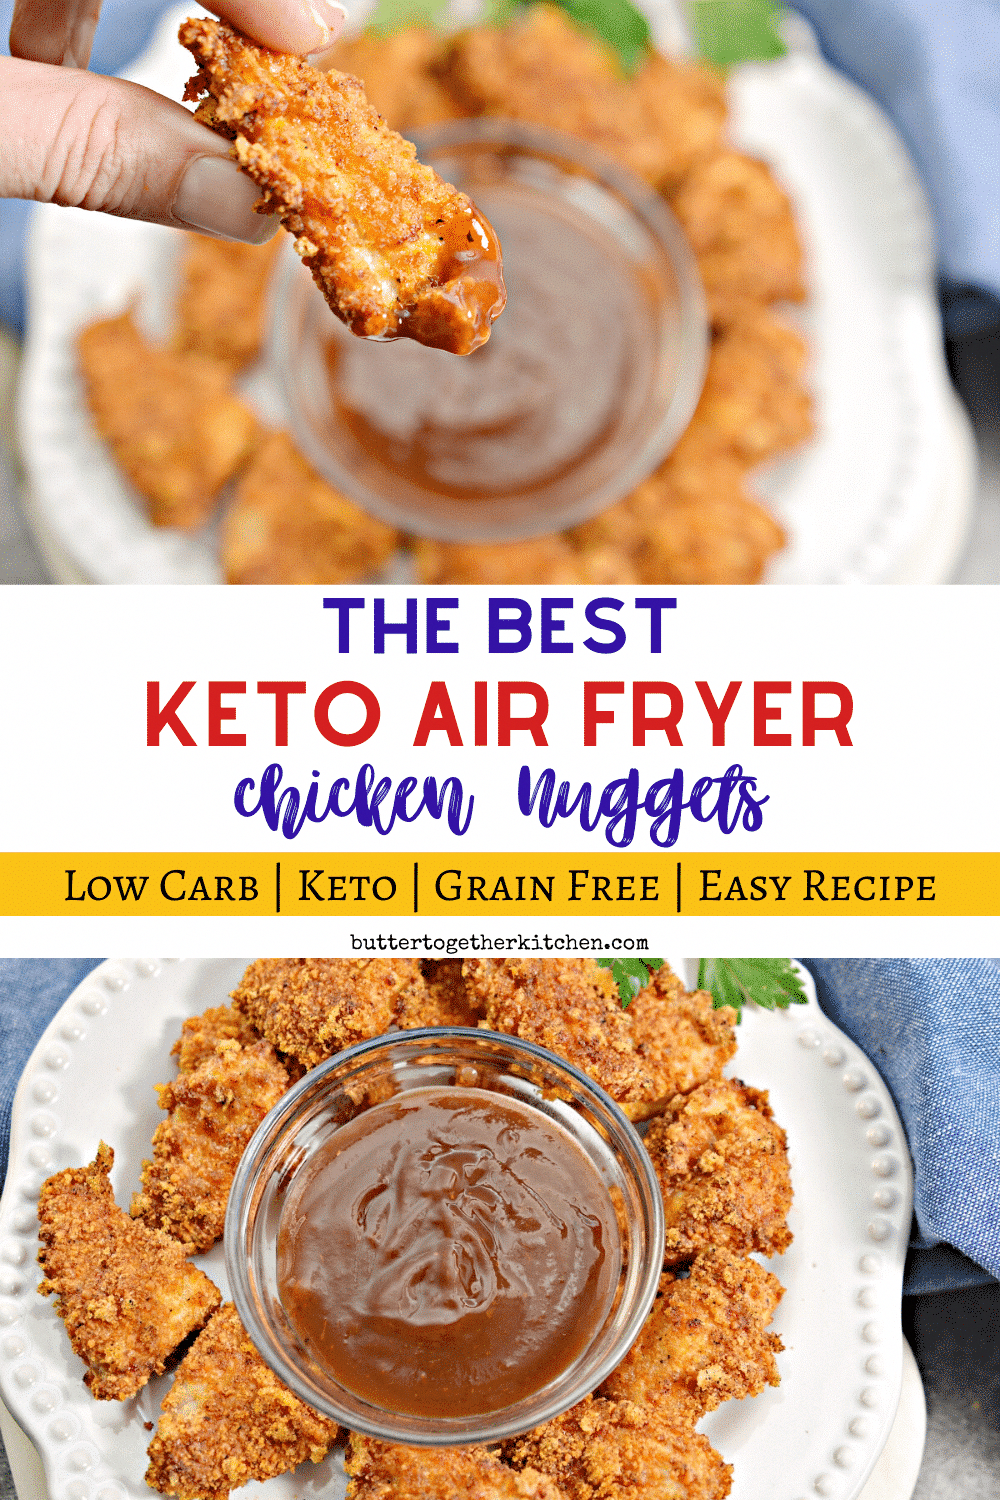 These Air Fryer Keto Chicken Nuggets are SO juicy, crispy